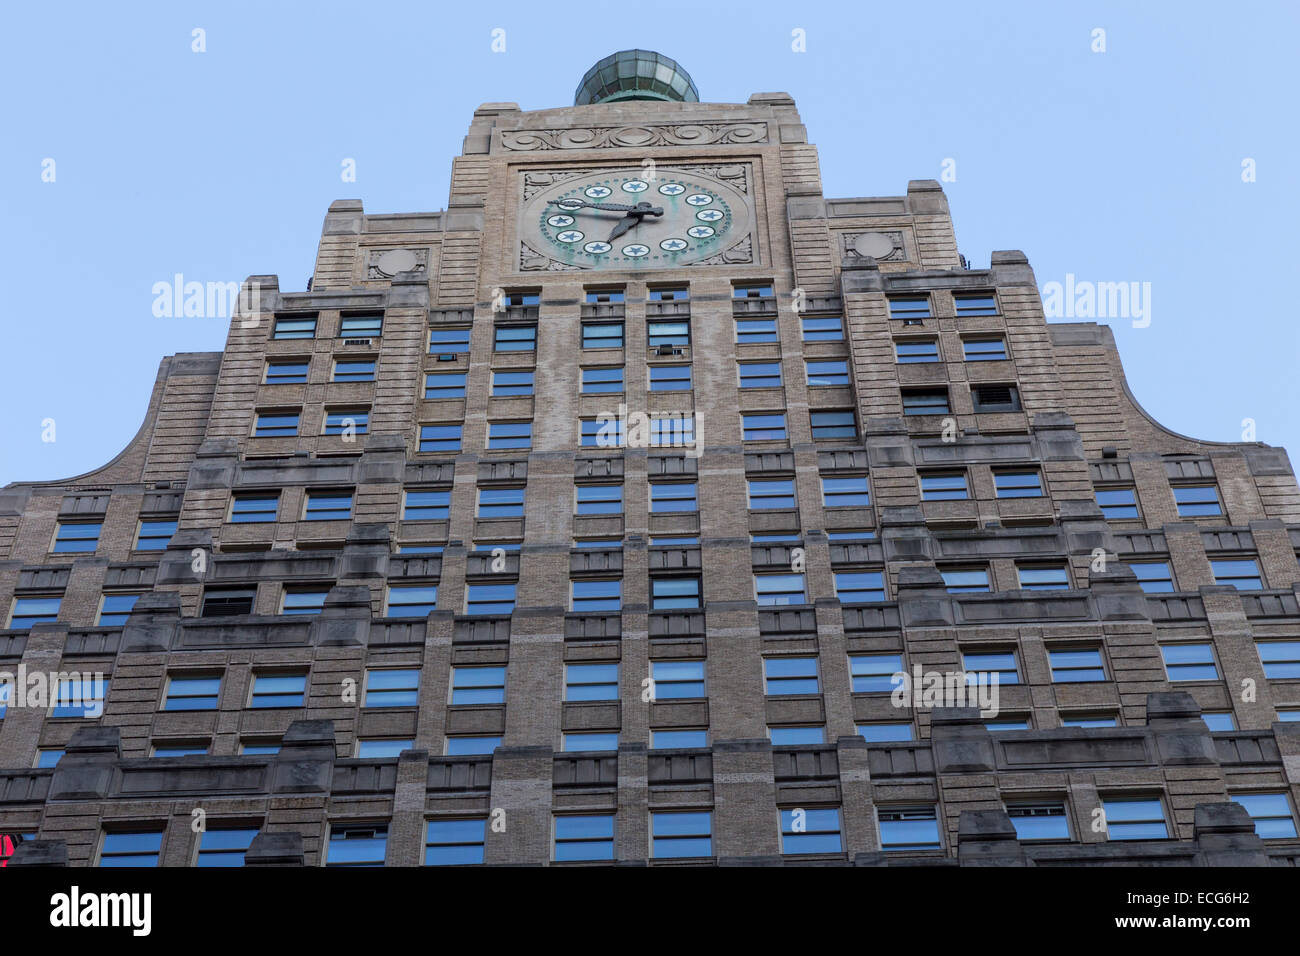 501 Broadway, also known as the Paramount Building, Times Square, New York - Stock Image